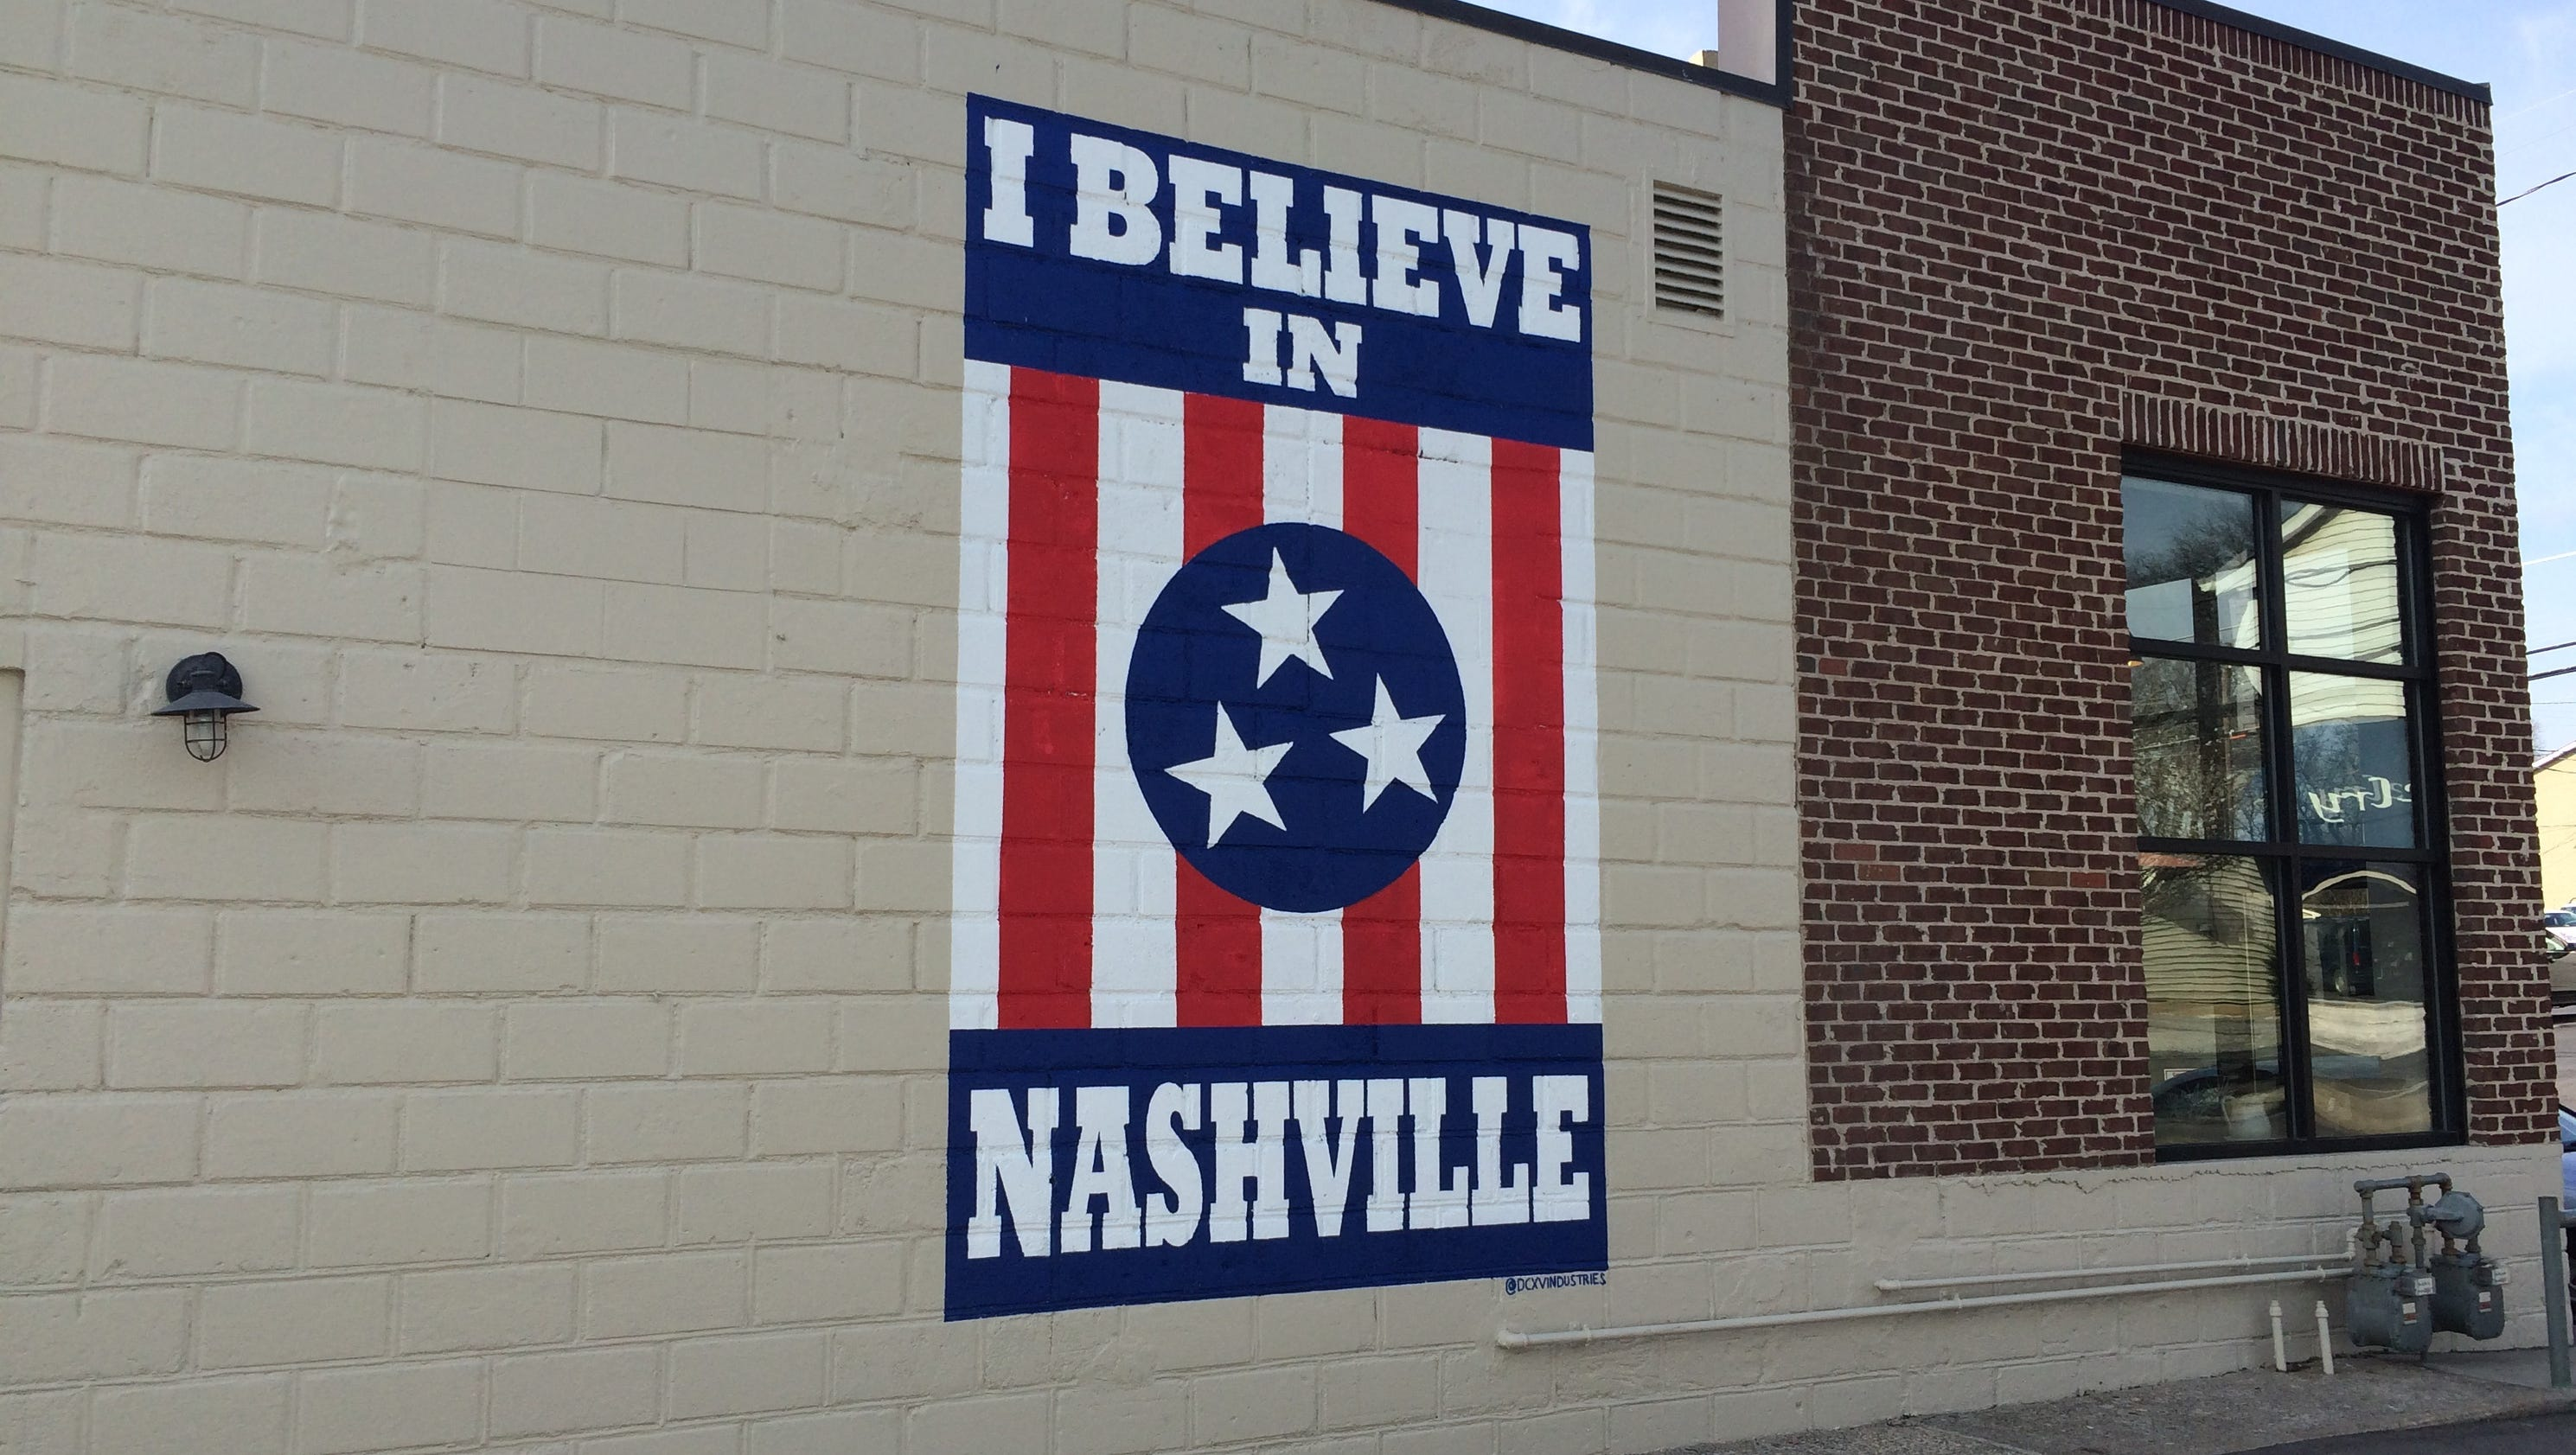 Nashville Wall Art see 12south's restored 'i believe in nashville' mural